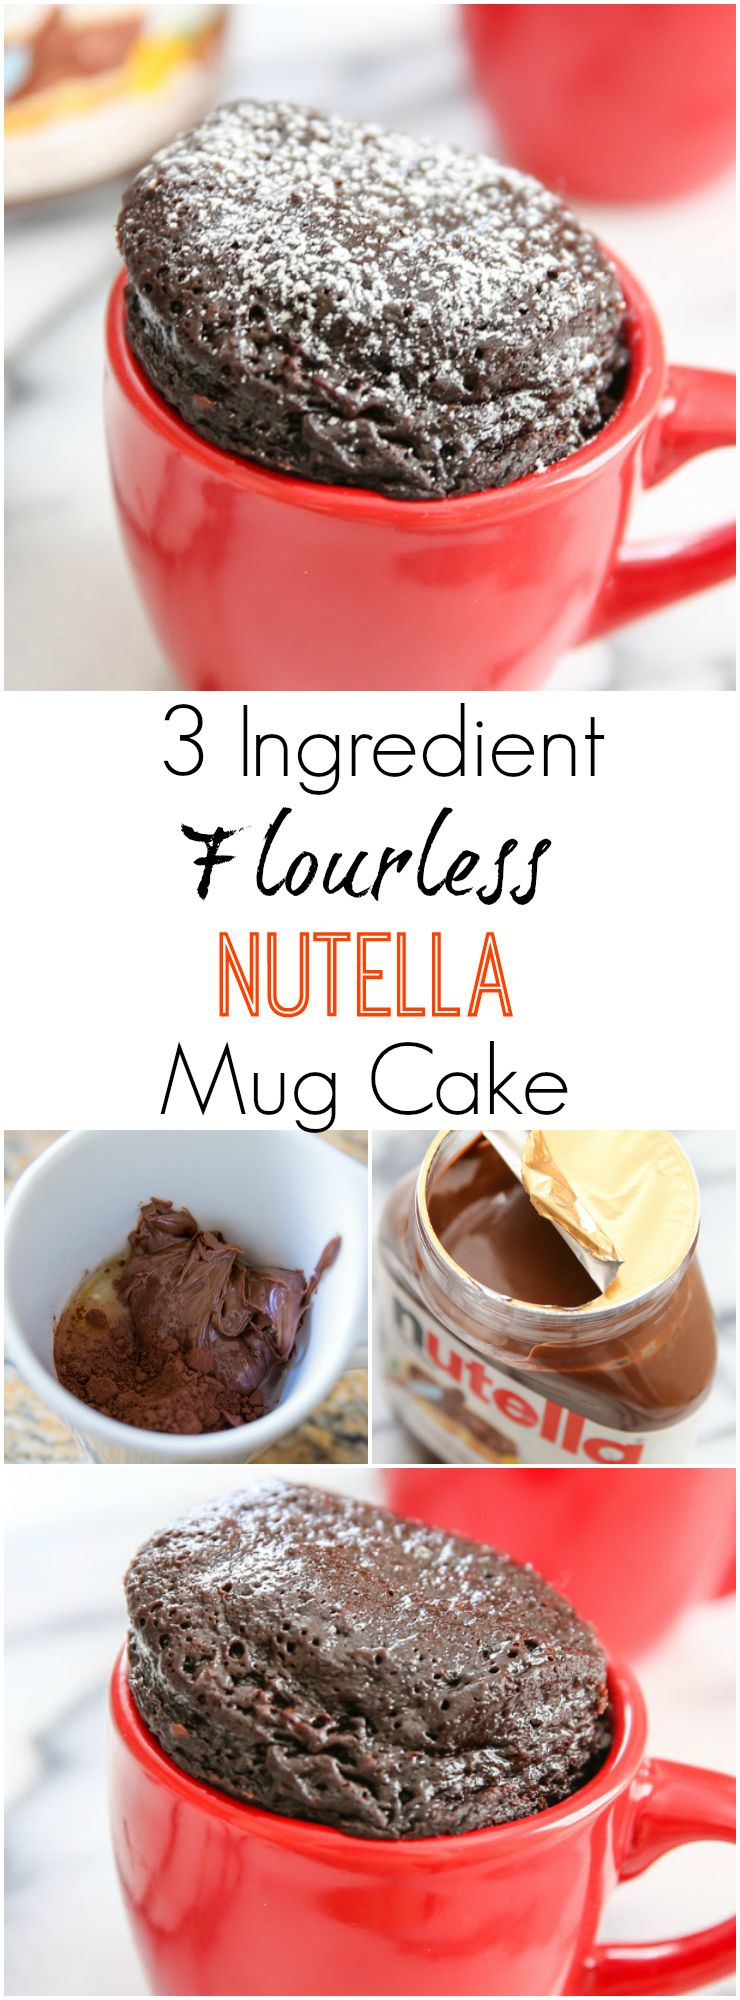 3 Ingredient Flourless Nutella Mug Cake. Super easy, single serving, rich and decadent microwave dessert. Click through for recipe!